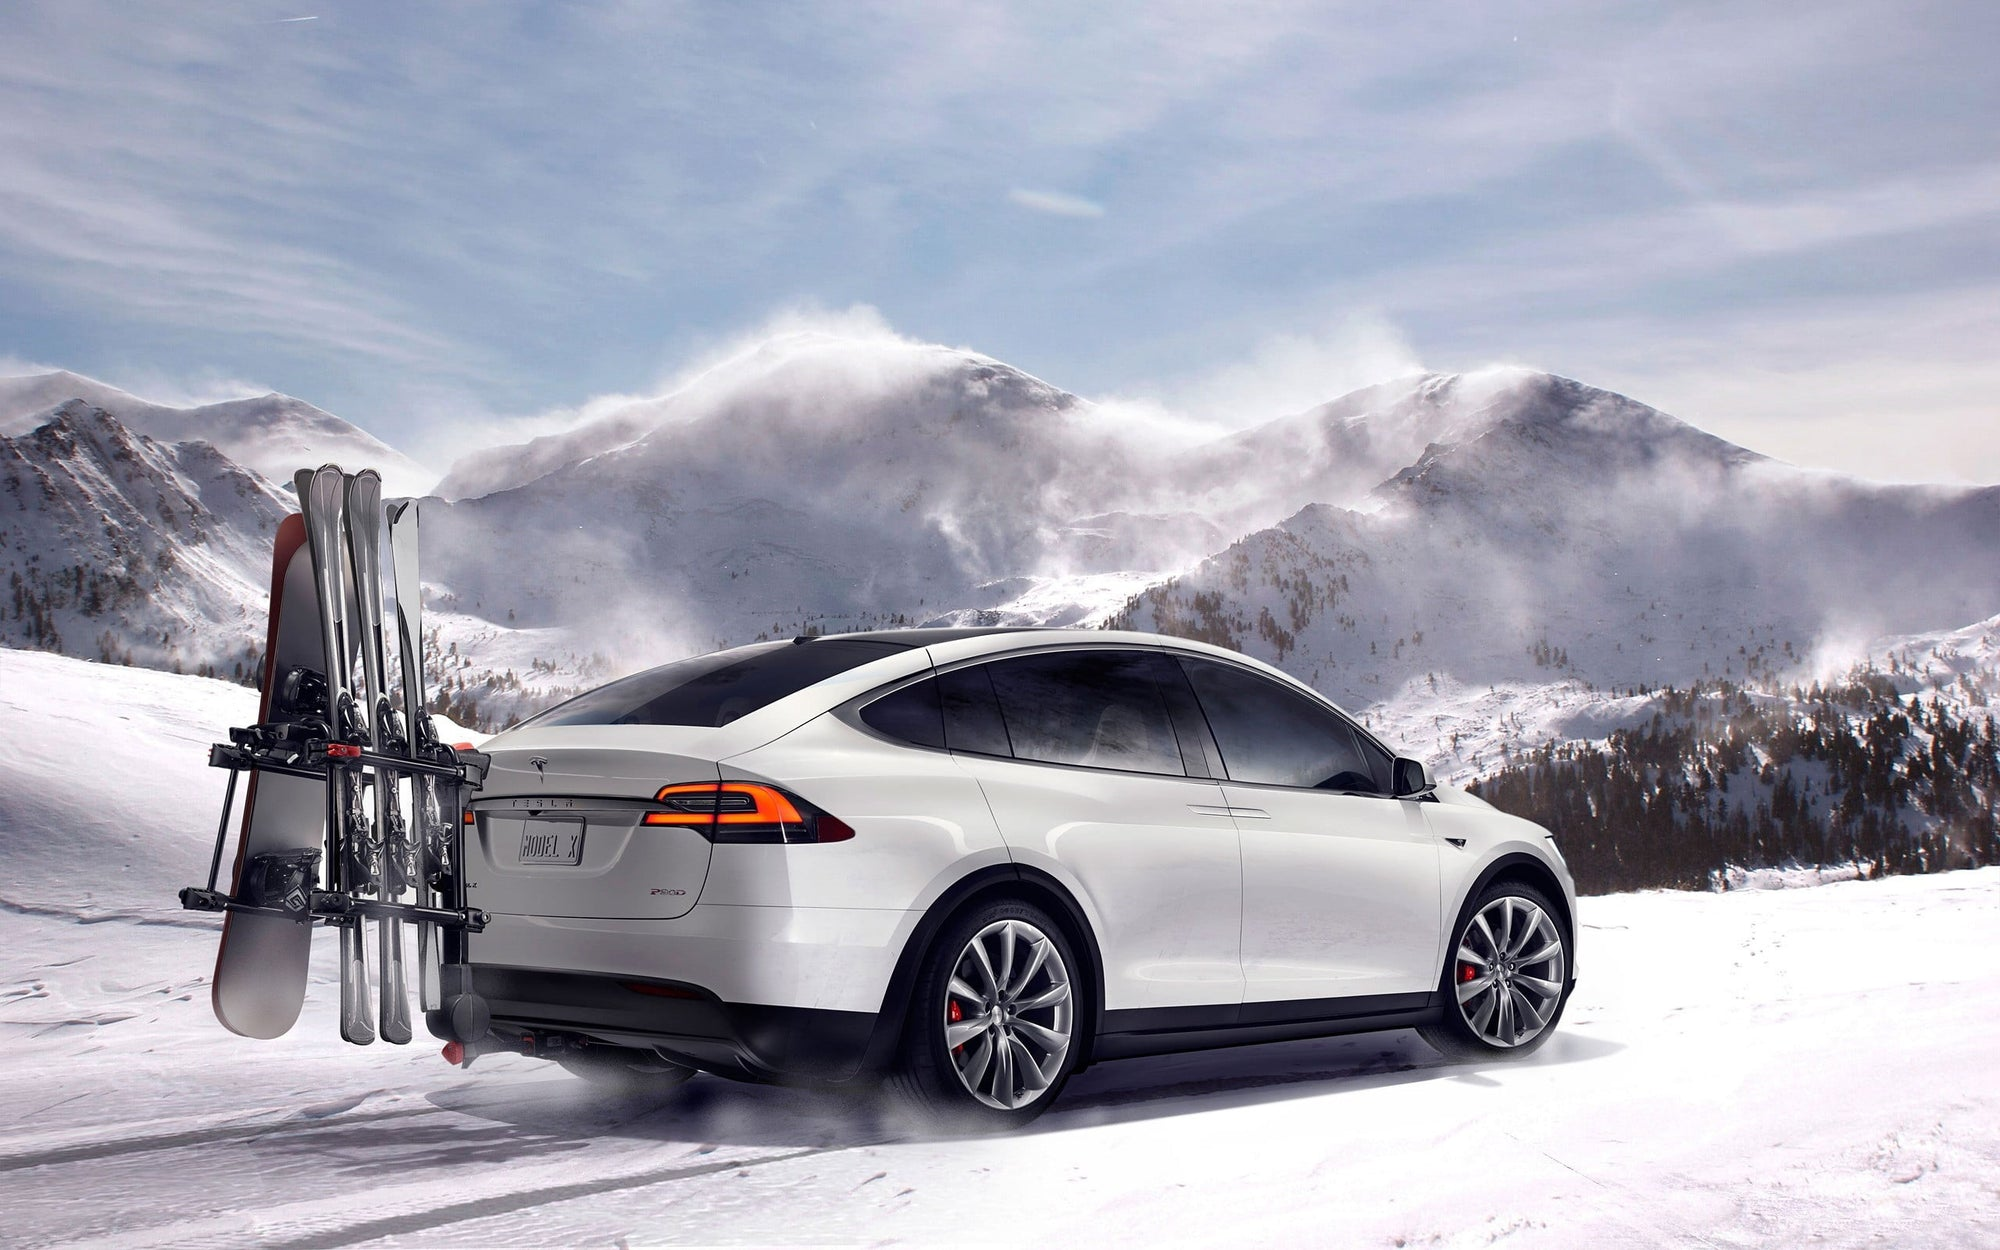 Tesla Became Iceland's Best-Selling Brand In Three Months Of 2020